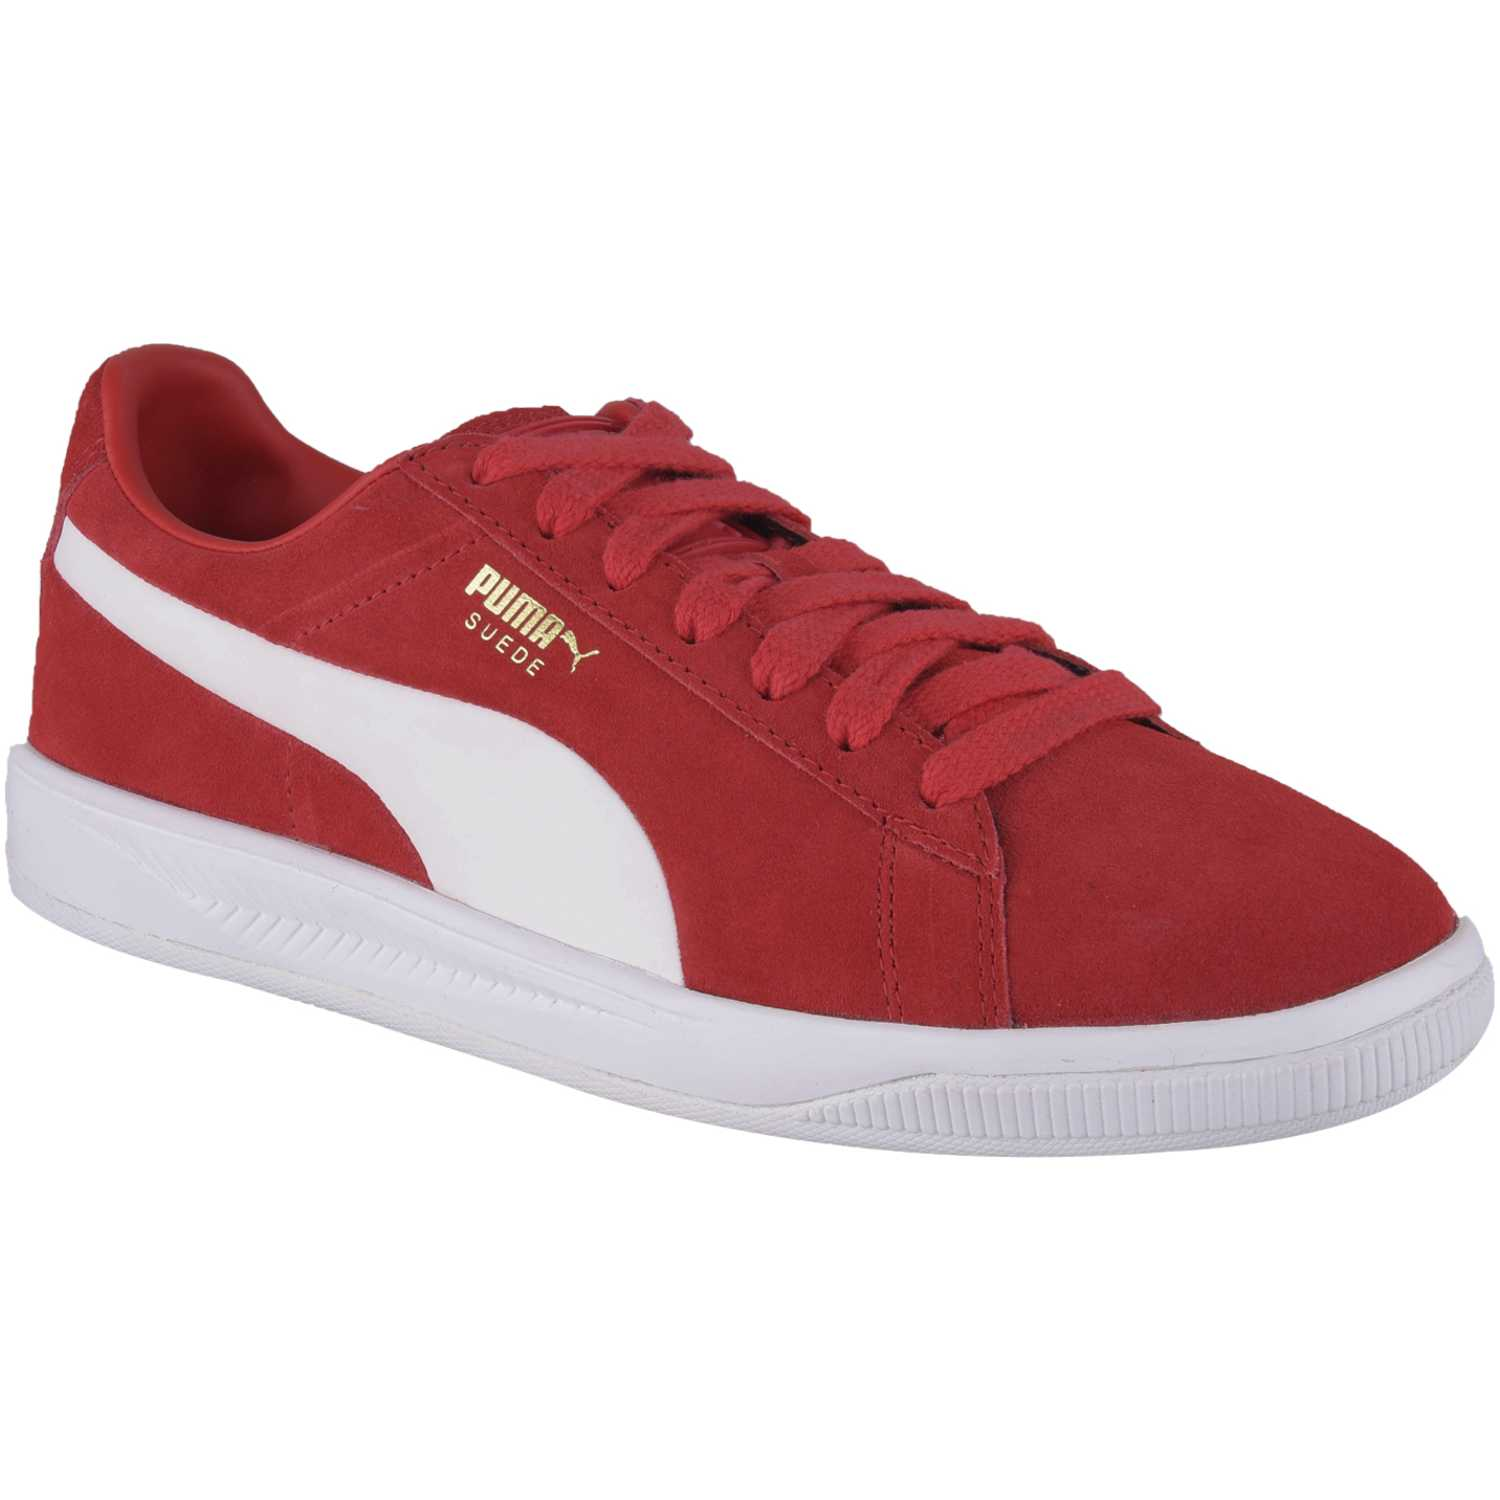 Puma suede ignite Rojo / blanco Walking | platanitos.com